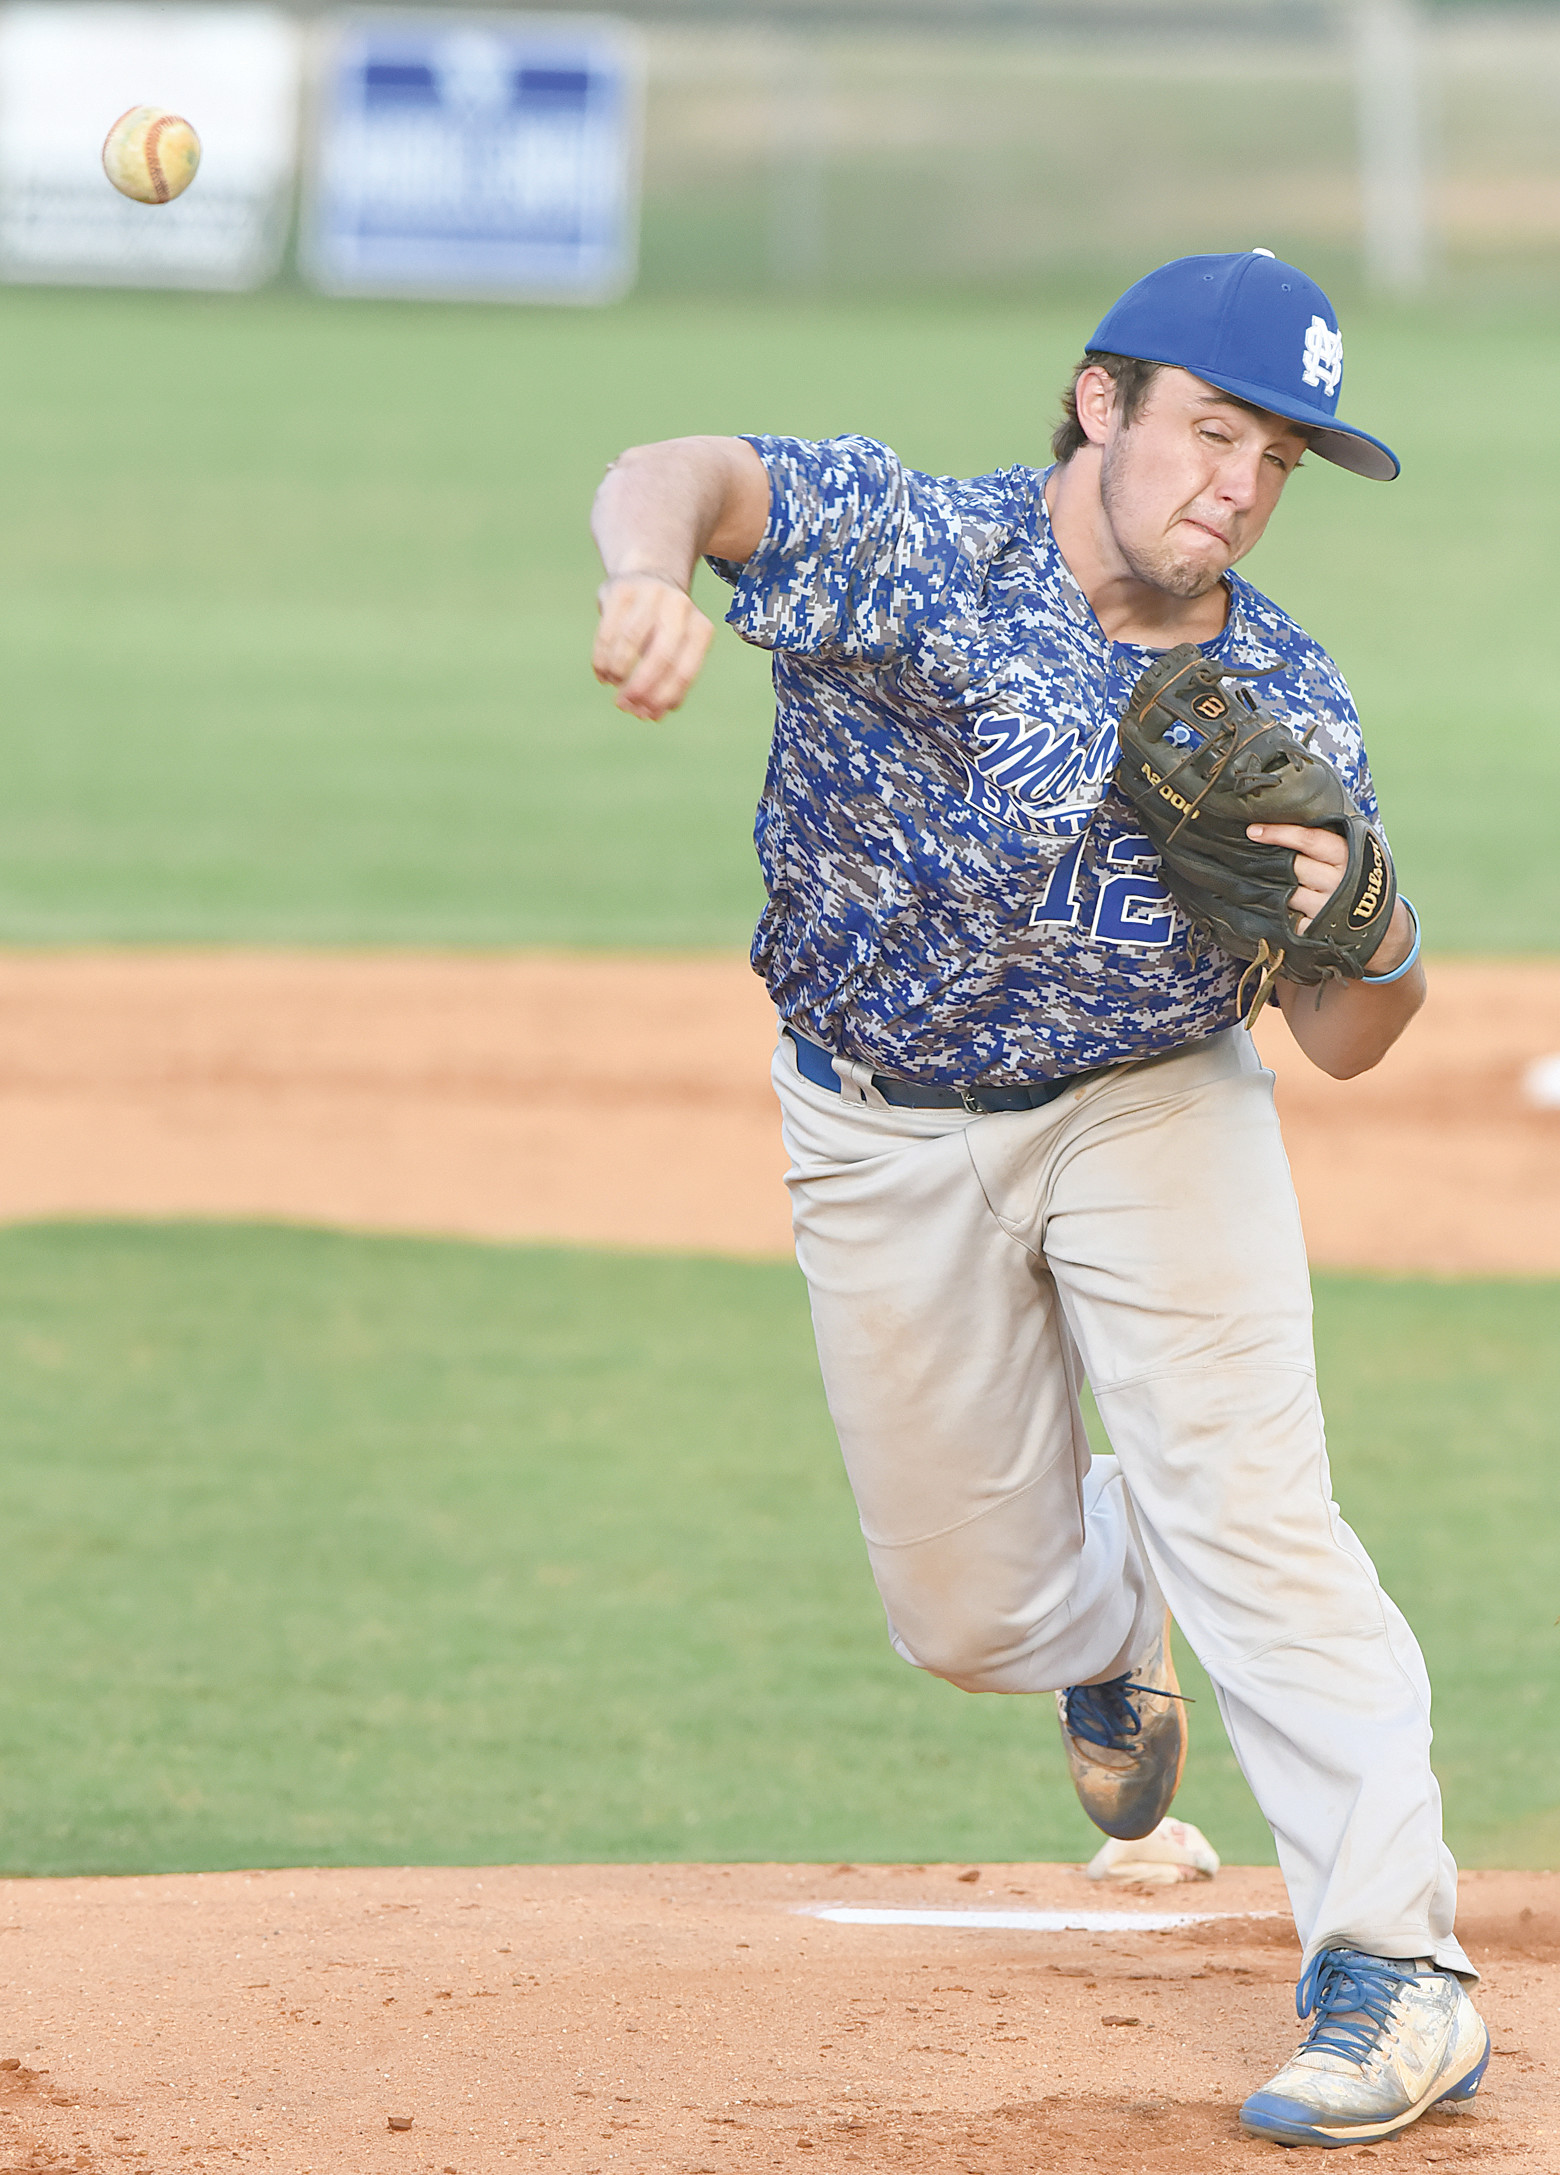 Manning-Santee's Braydon Osteen will get the start tonight as Post 68 opens up its first-round state playoff series on the road at Conway High School against Horry Post 111.